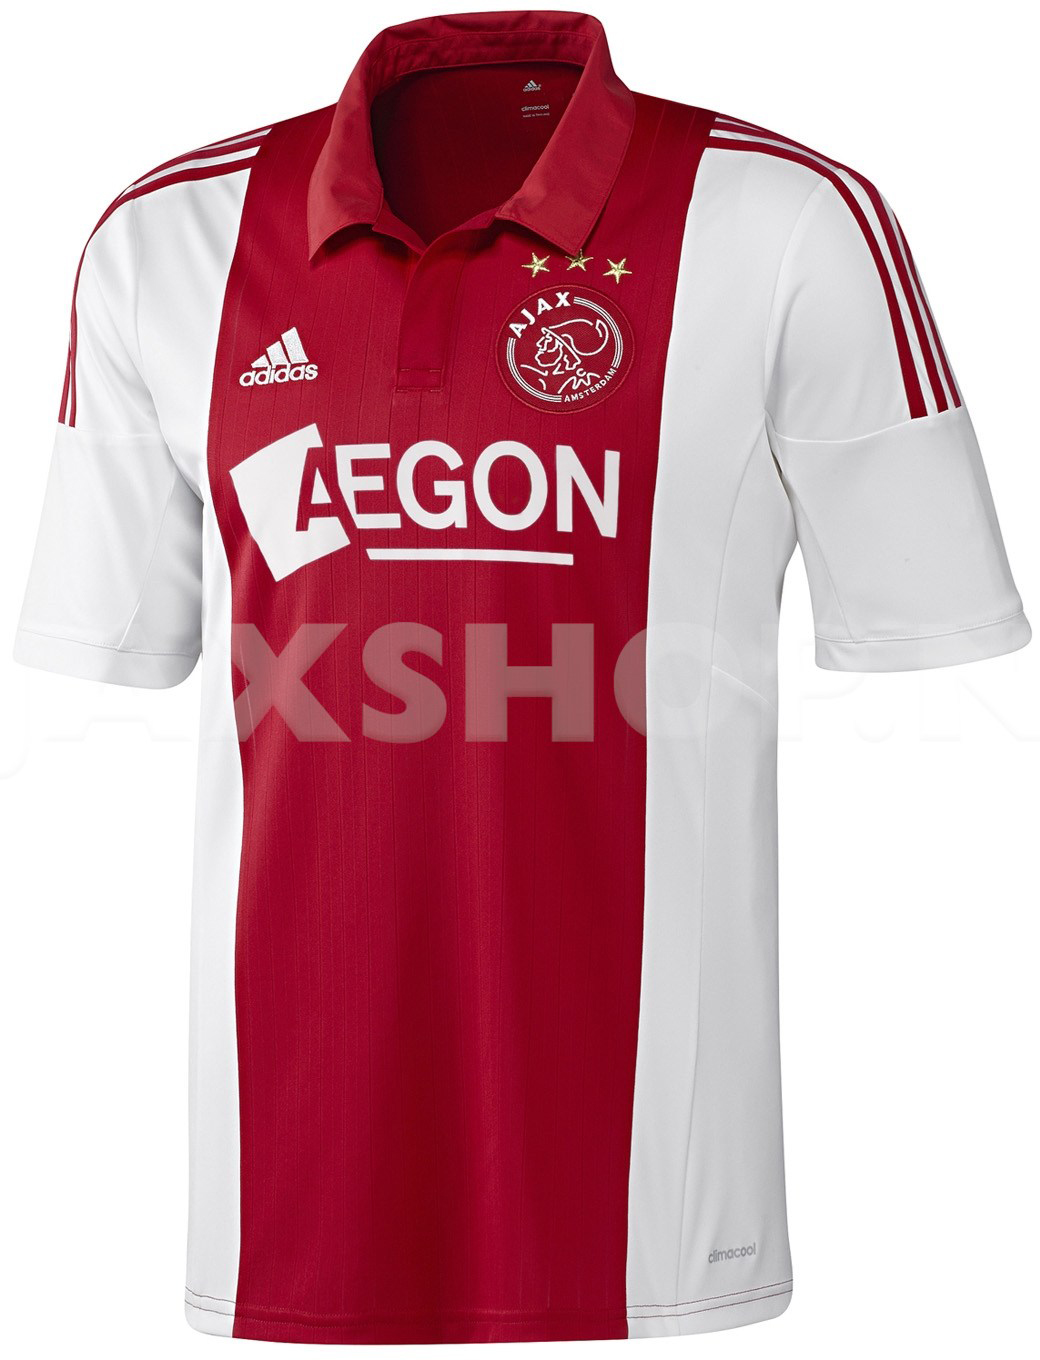 Ajax 14-15 Home And Away Kits Released